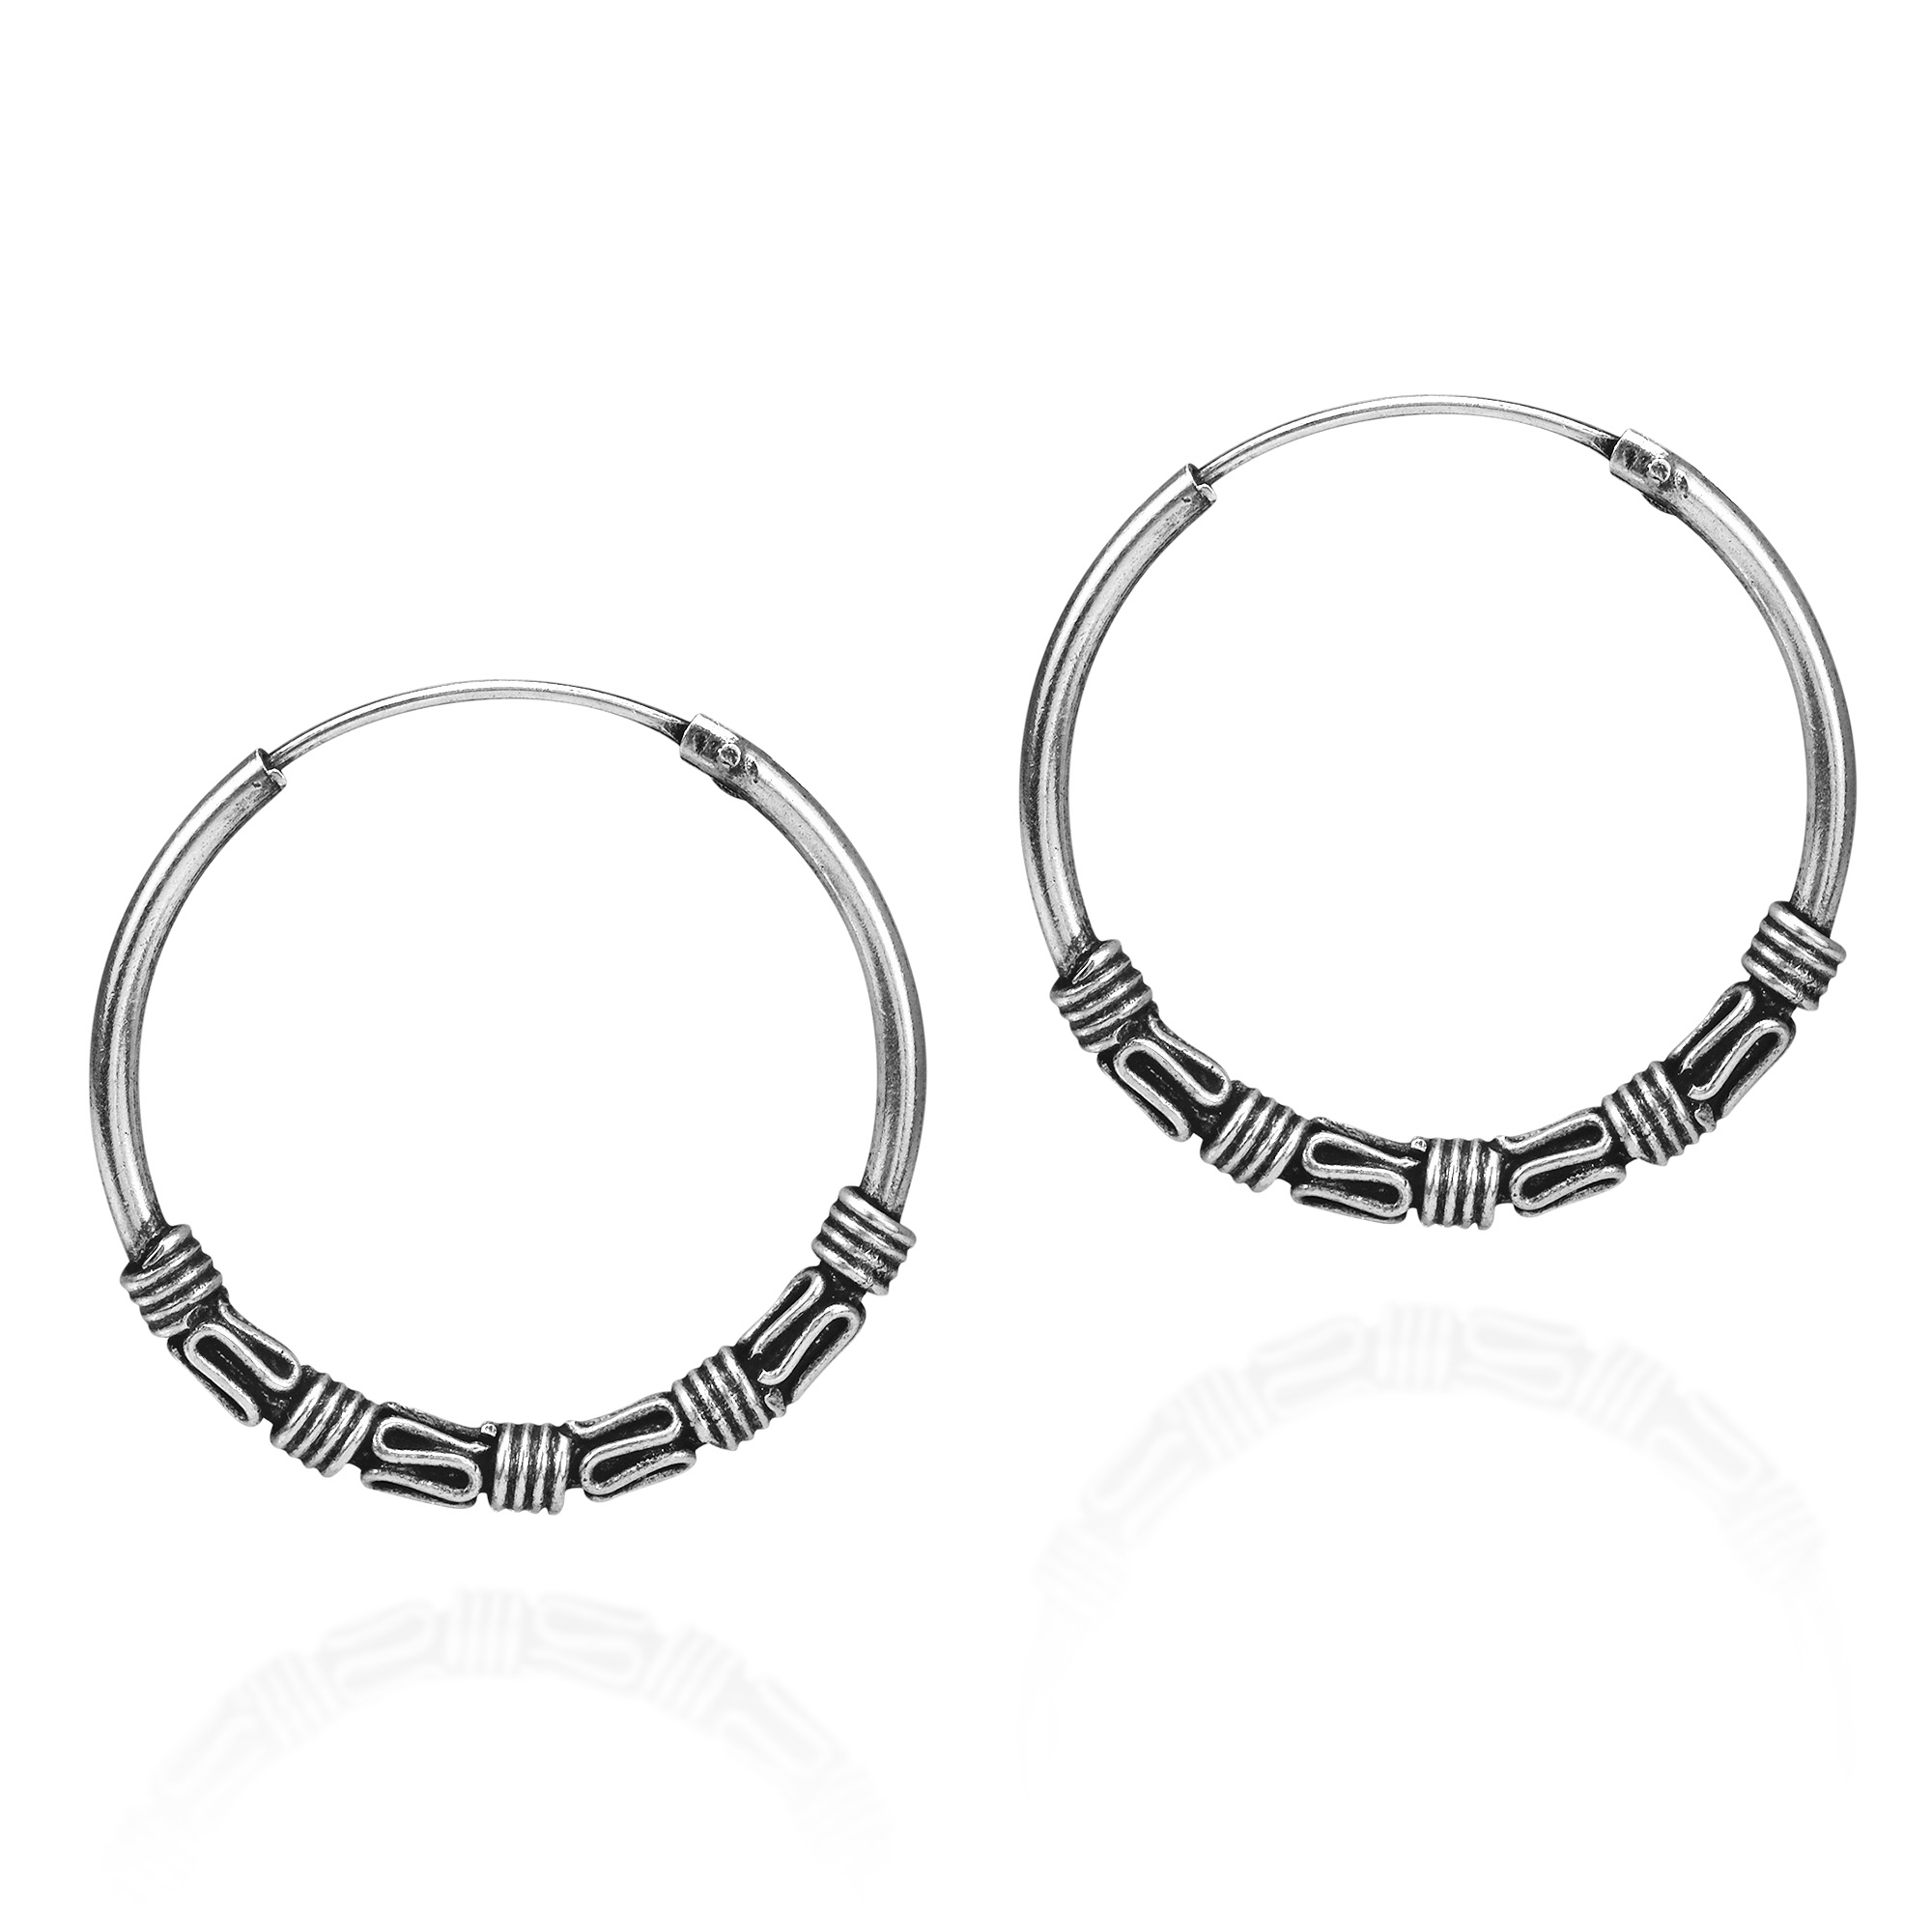 Katsaya From Thailand Handcrafted These Exotic Earrings The Hoop Were With Sterling Silver And Centered Balinese Styling